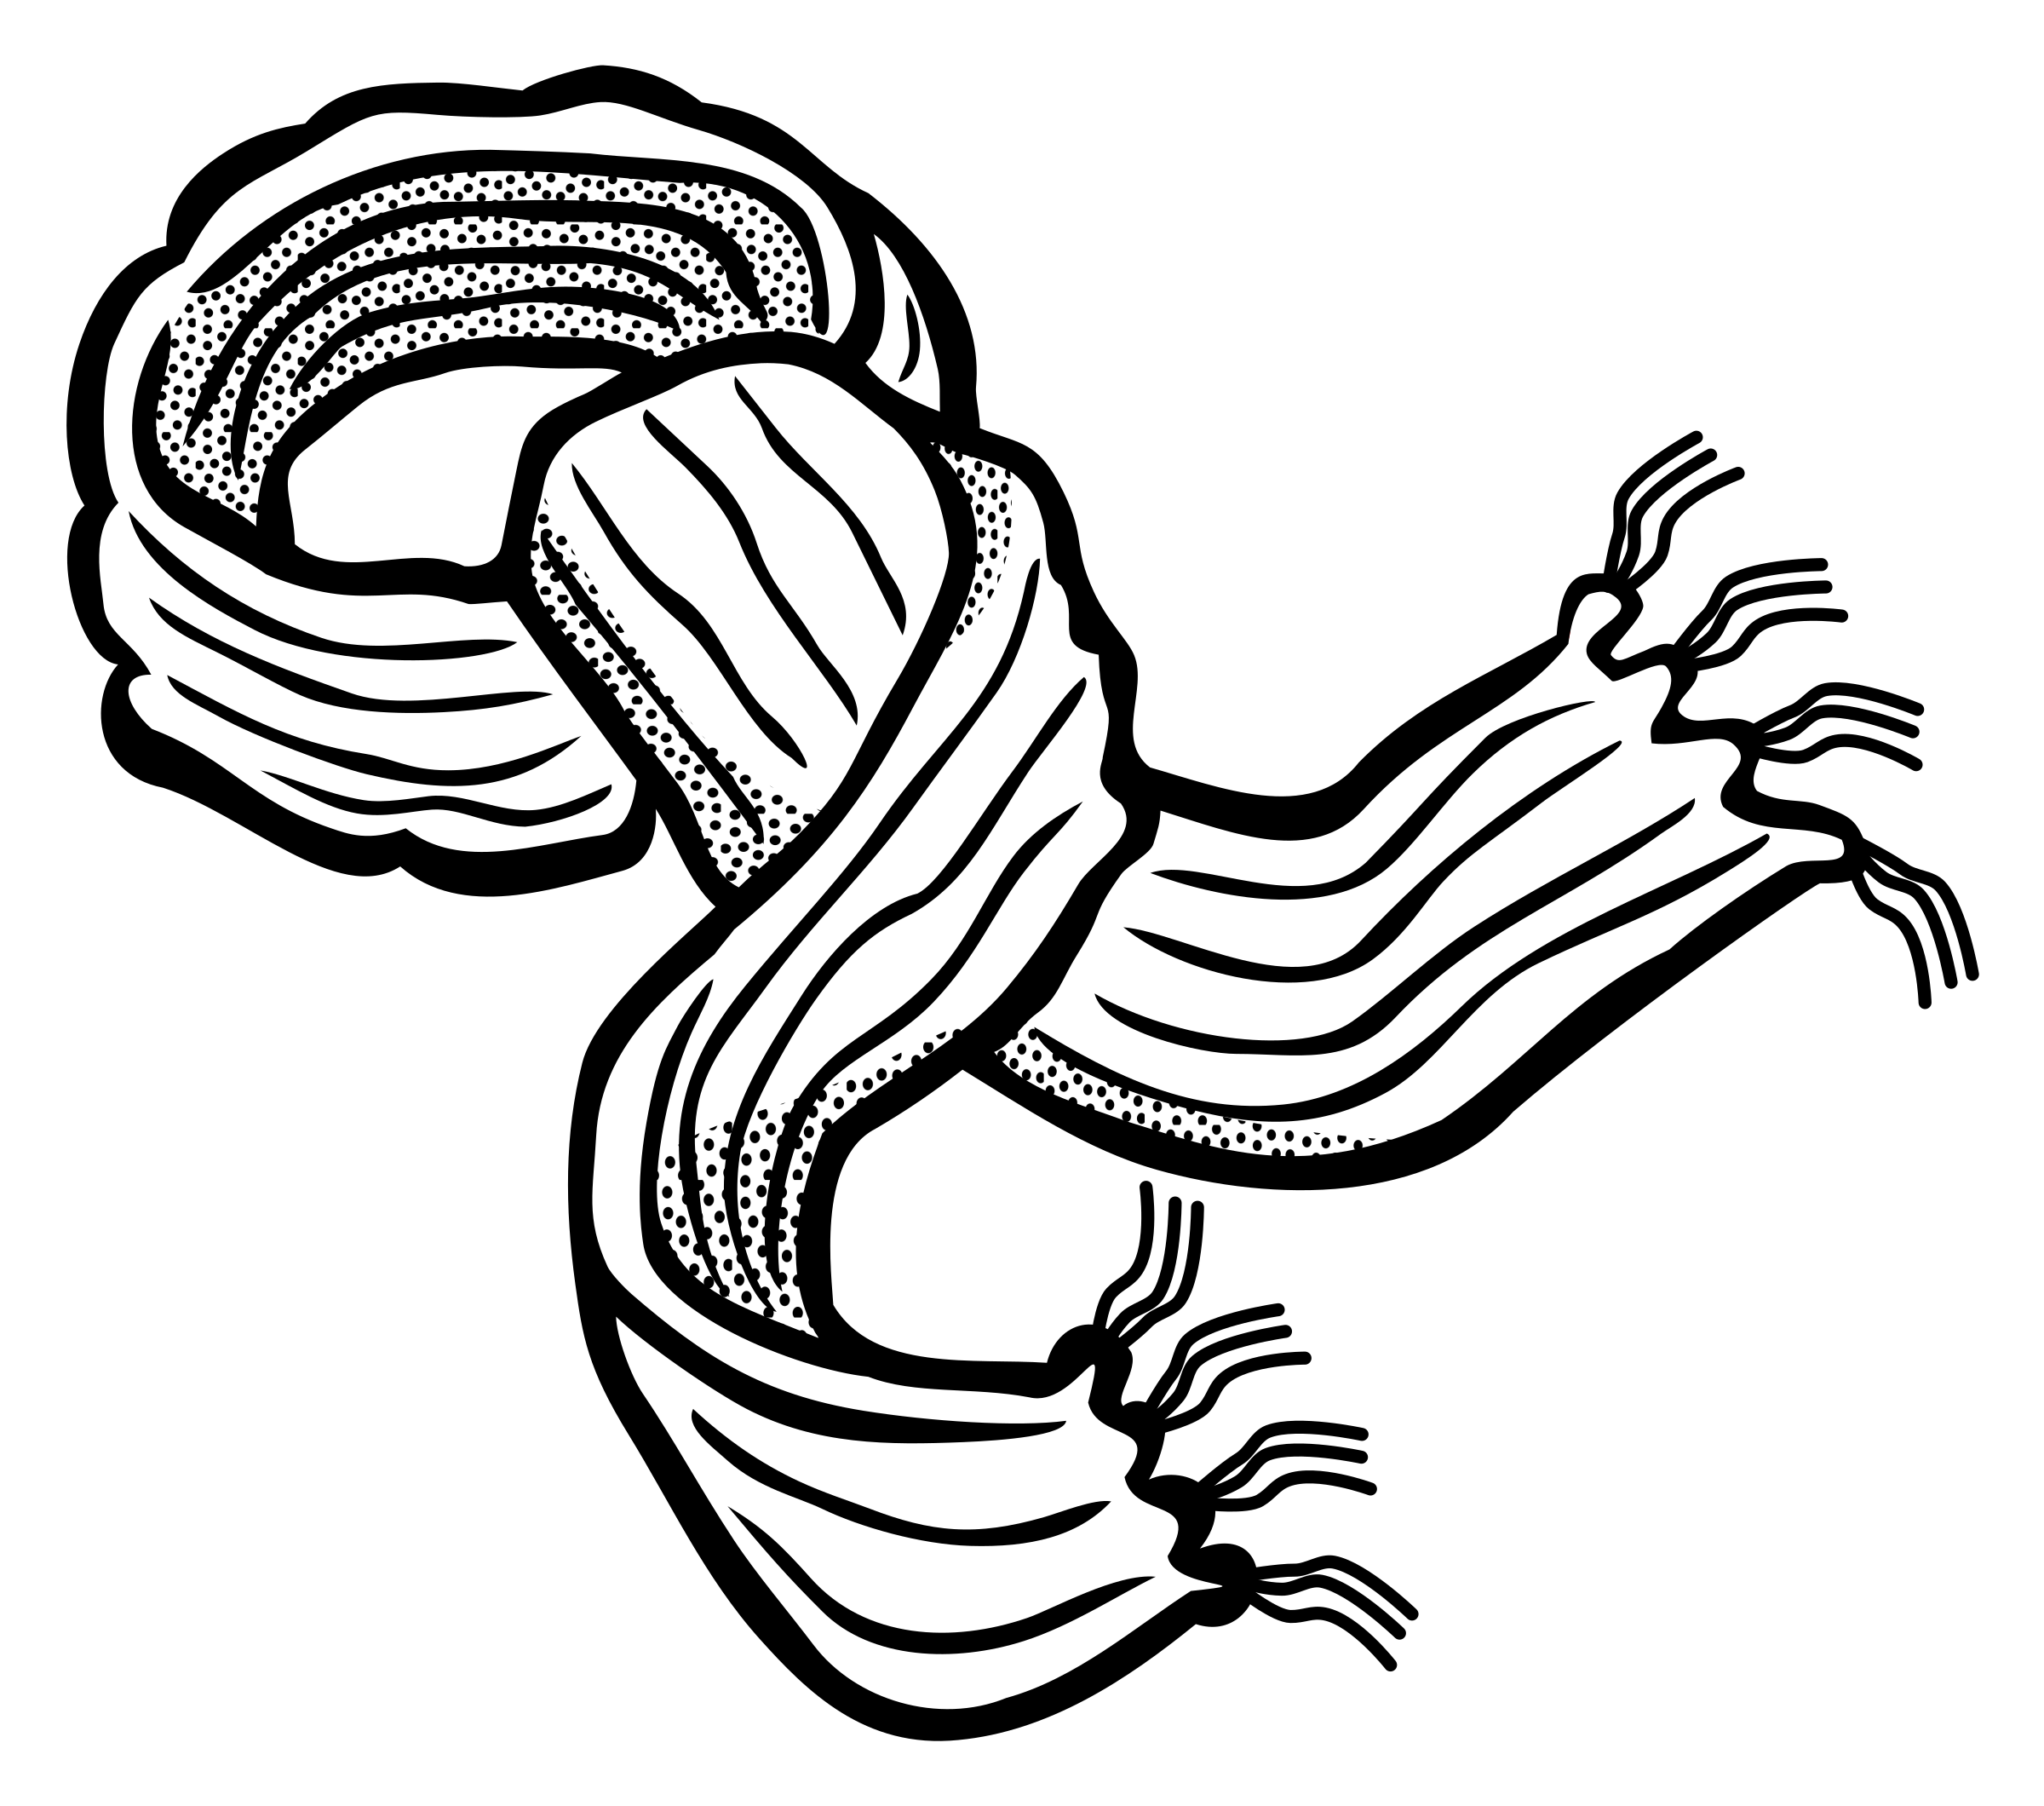 Black & White clipart scarf Clipart lineart scarf scarf lineart